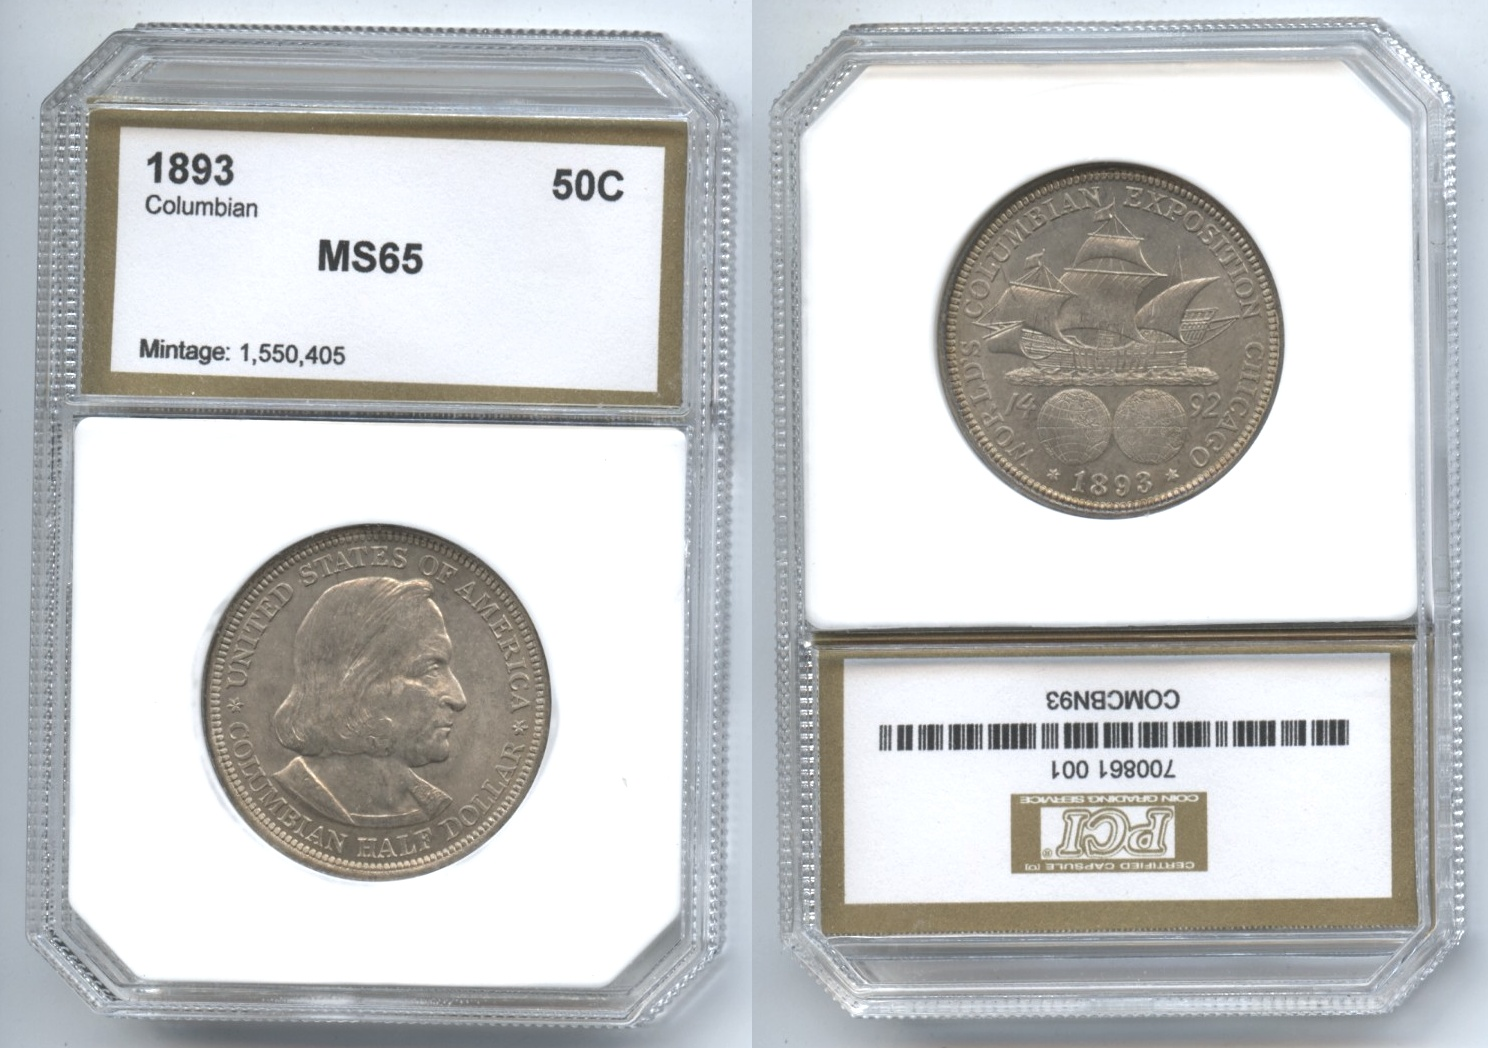 1893 Columbian Commemorative Half Dollar PCI MS-65